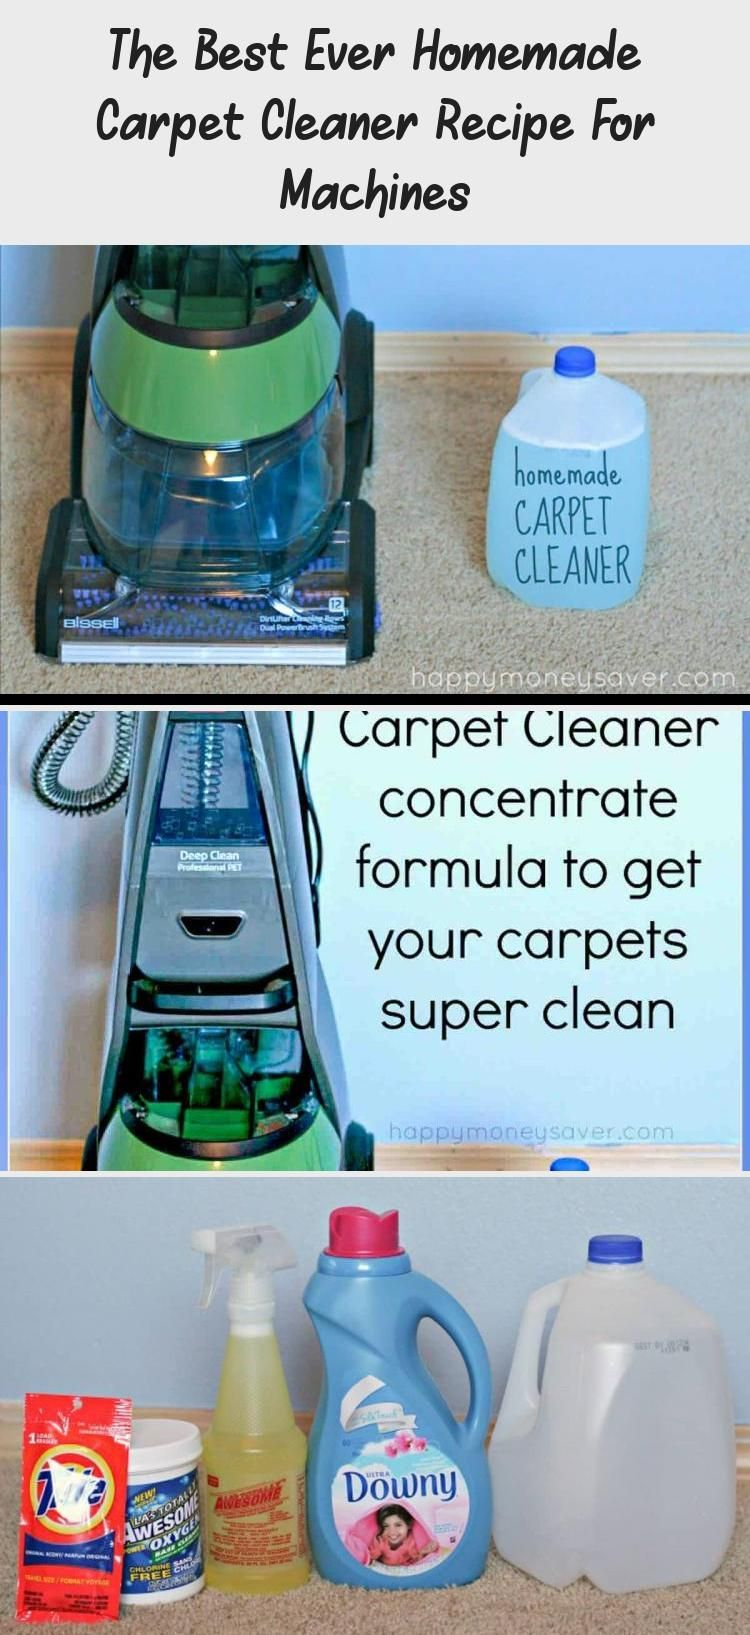 Diy Carpet Cleaner Solution With Dawn Hydrogen Peroxide Homemade Laundry Stain Remover Diy Cleaning Products Carpet Cleaner Solution